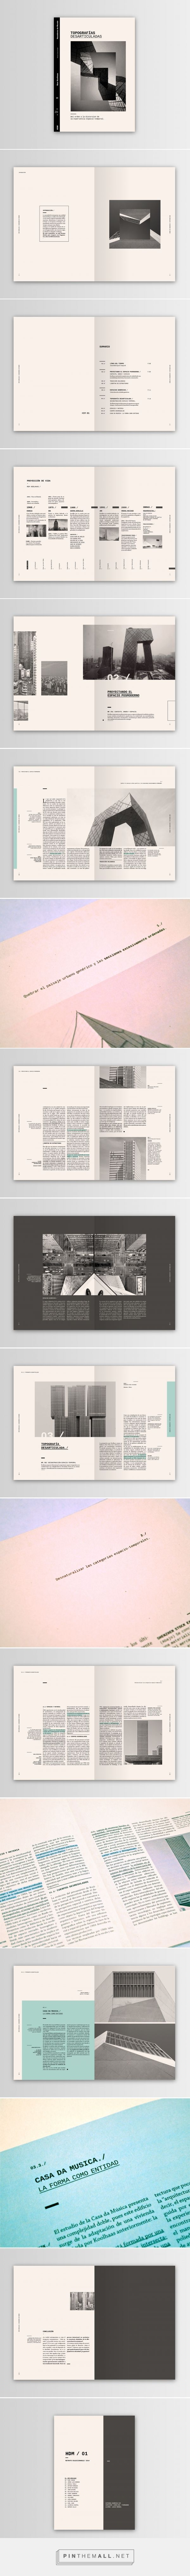 Rem Koolhaas Pressbook on Behance